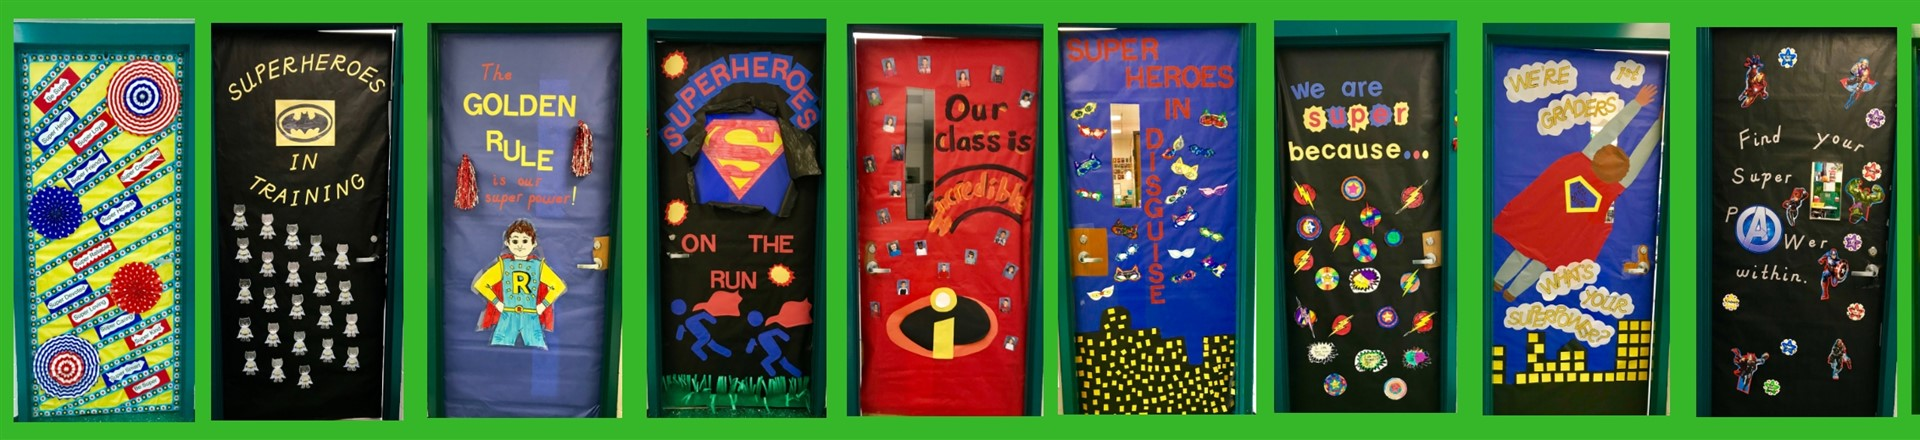 Superhero Doors